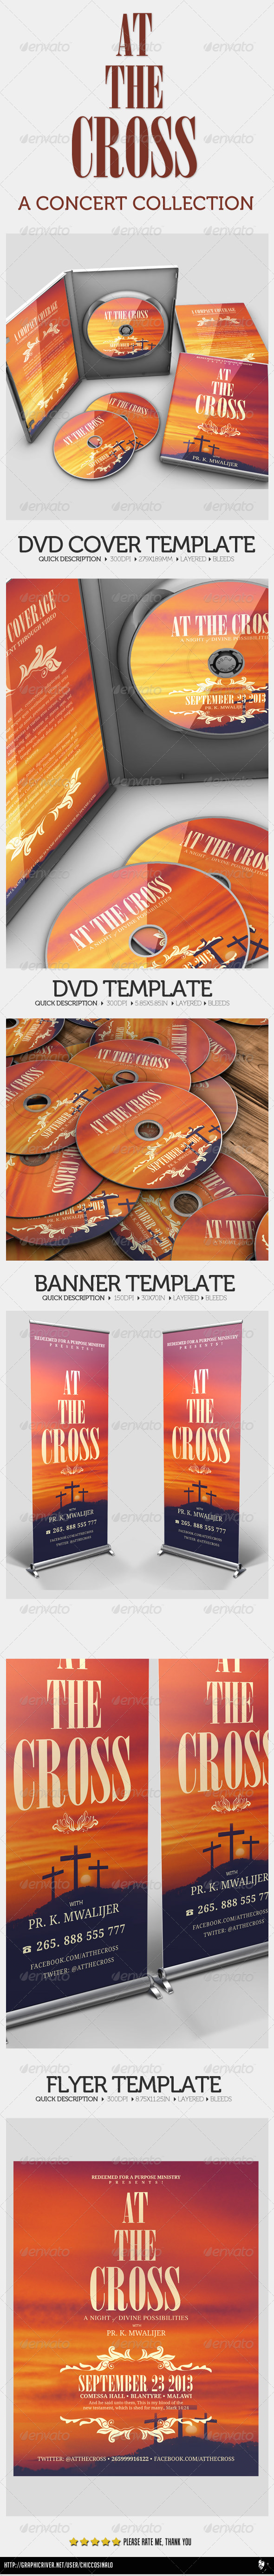 At The Cross Concert Collection Banner Dvd Flyer - Print Templates